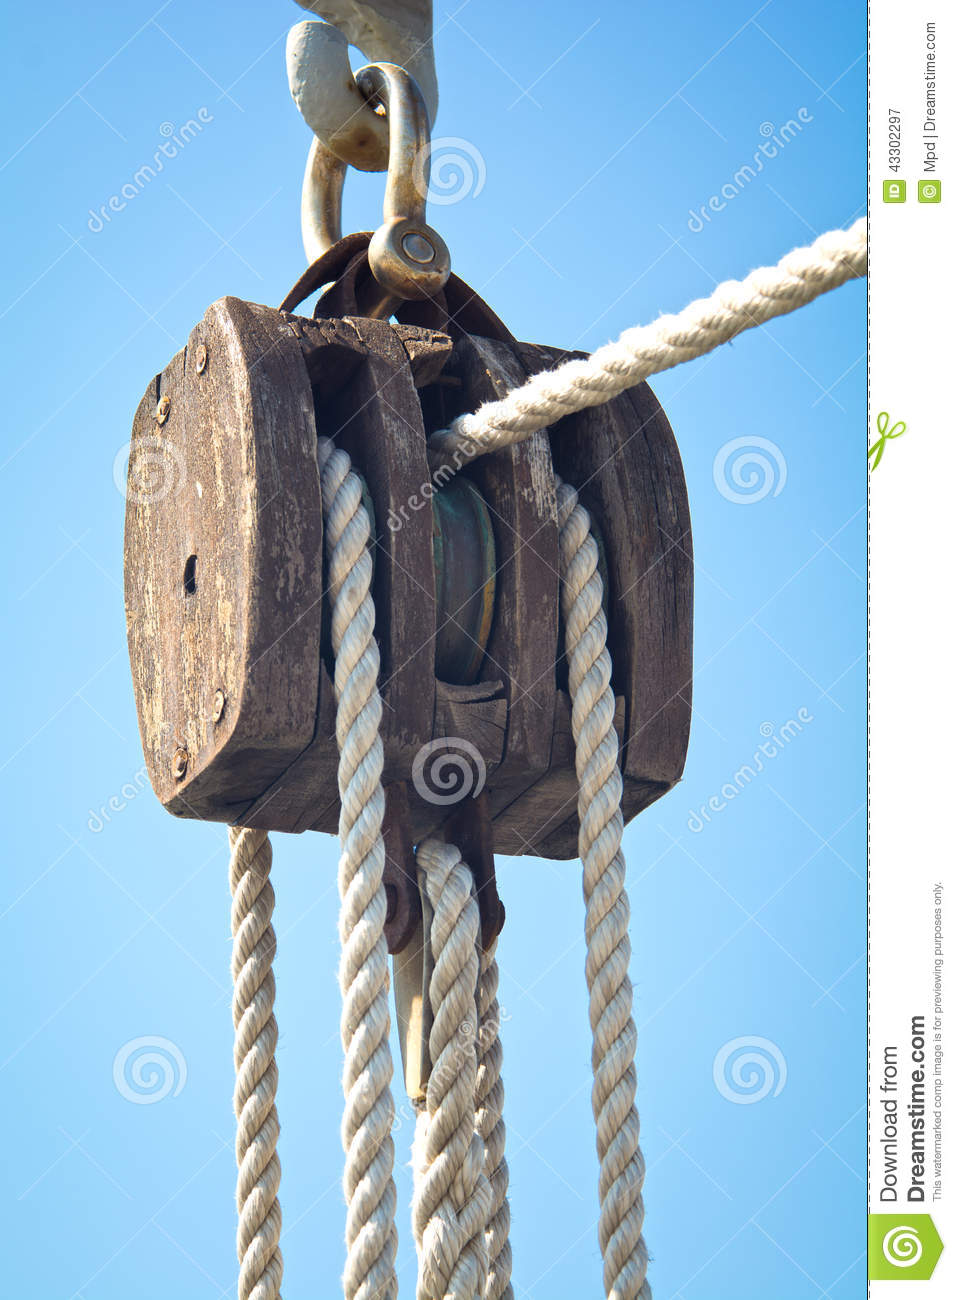 Old ship pulley stock photo image 43302297 for Uses for old pulleys